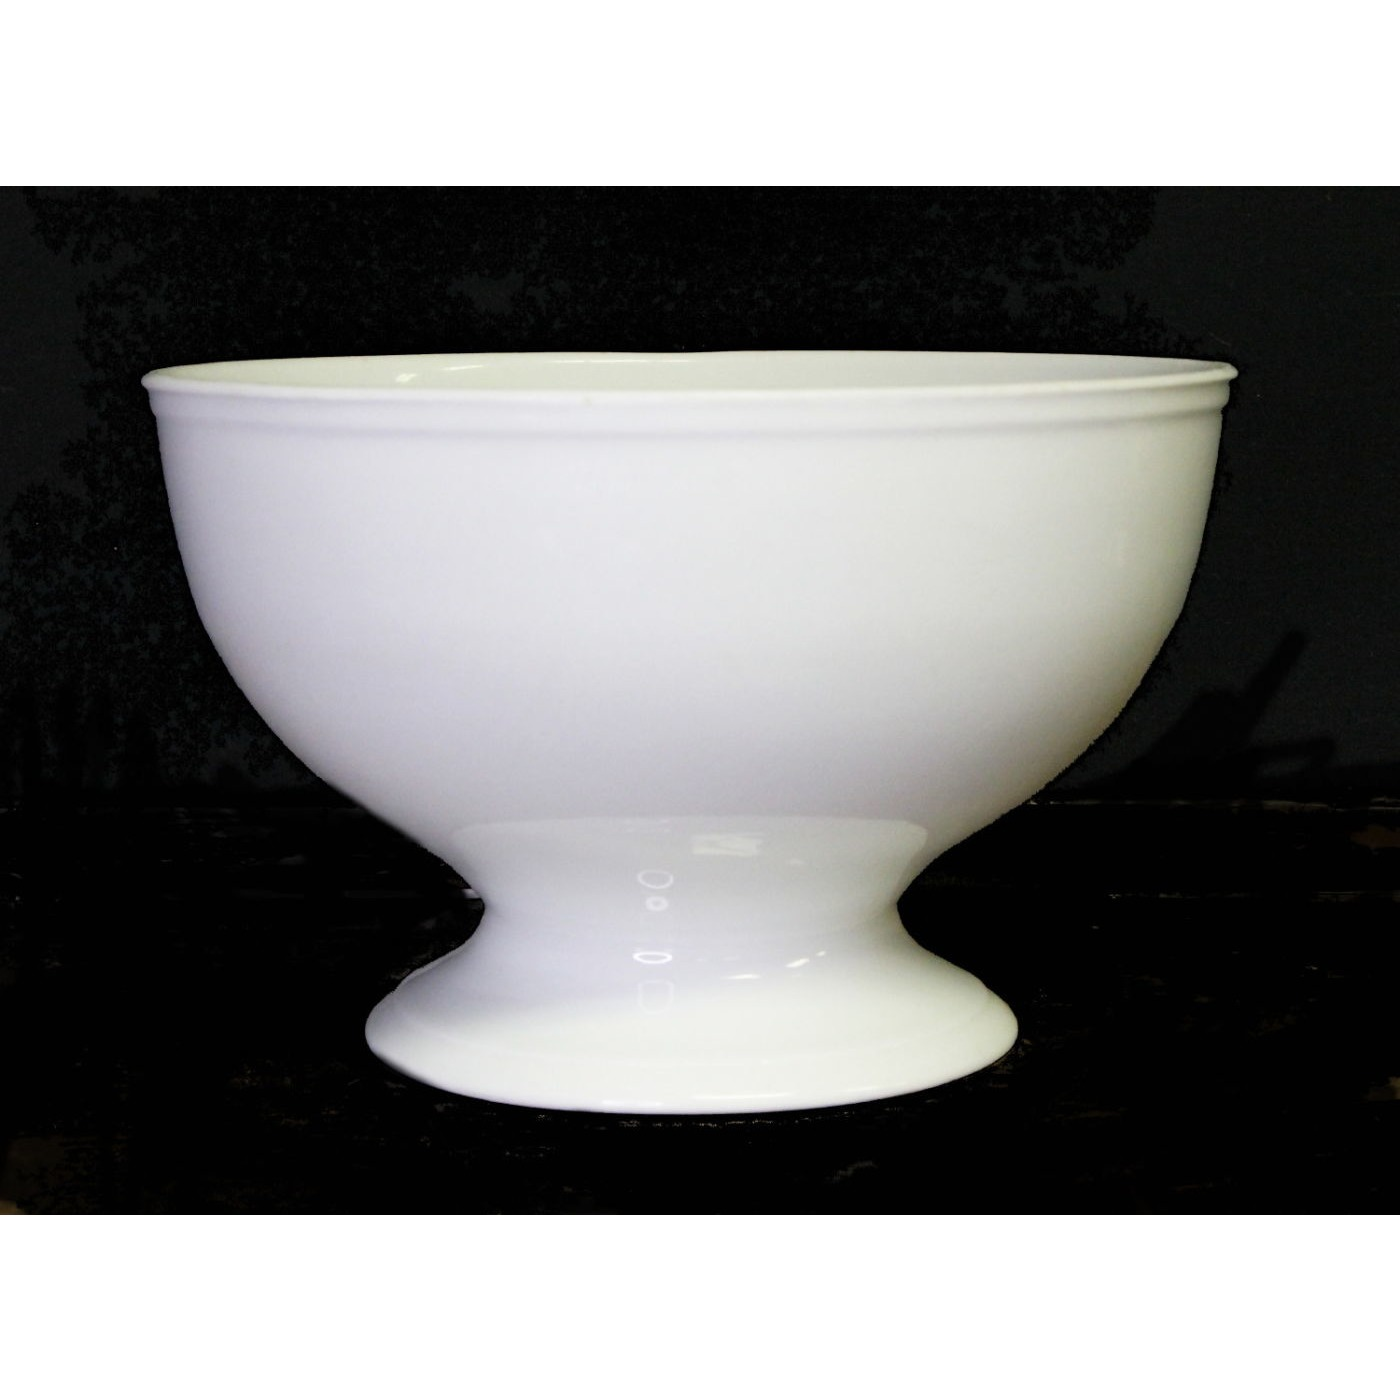 Unusual Shape Early Boote Ironstone Punch Pedestal Footed Bowl